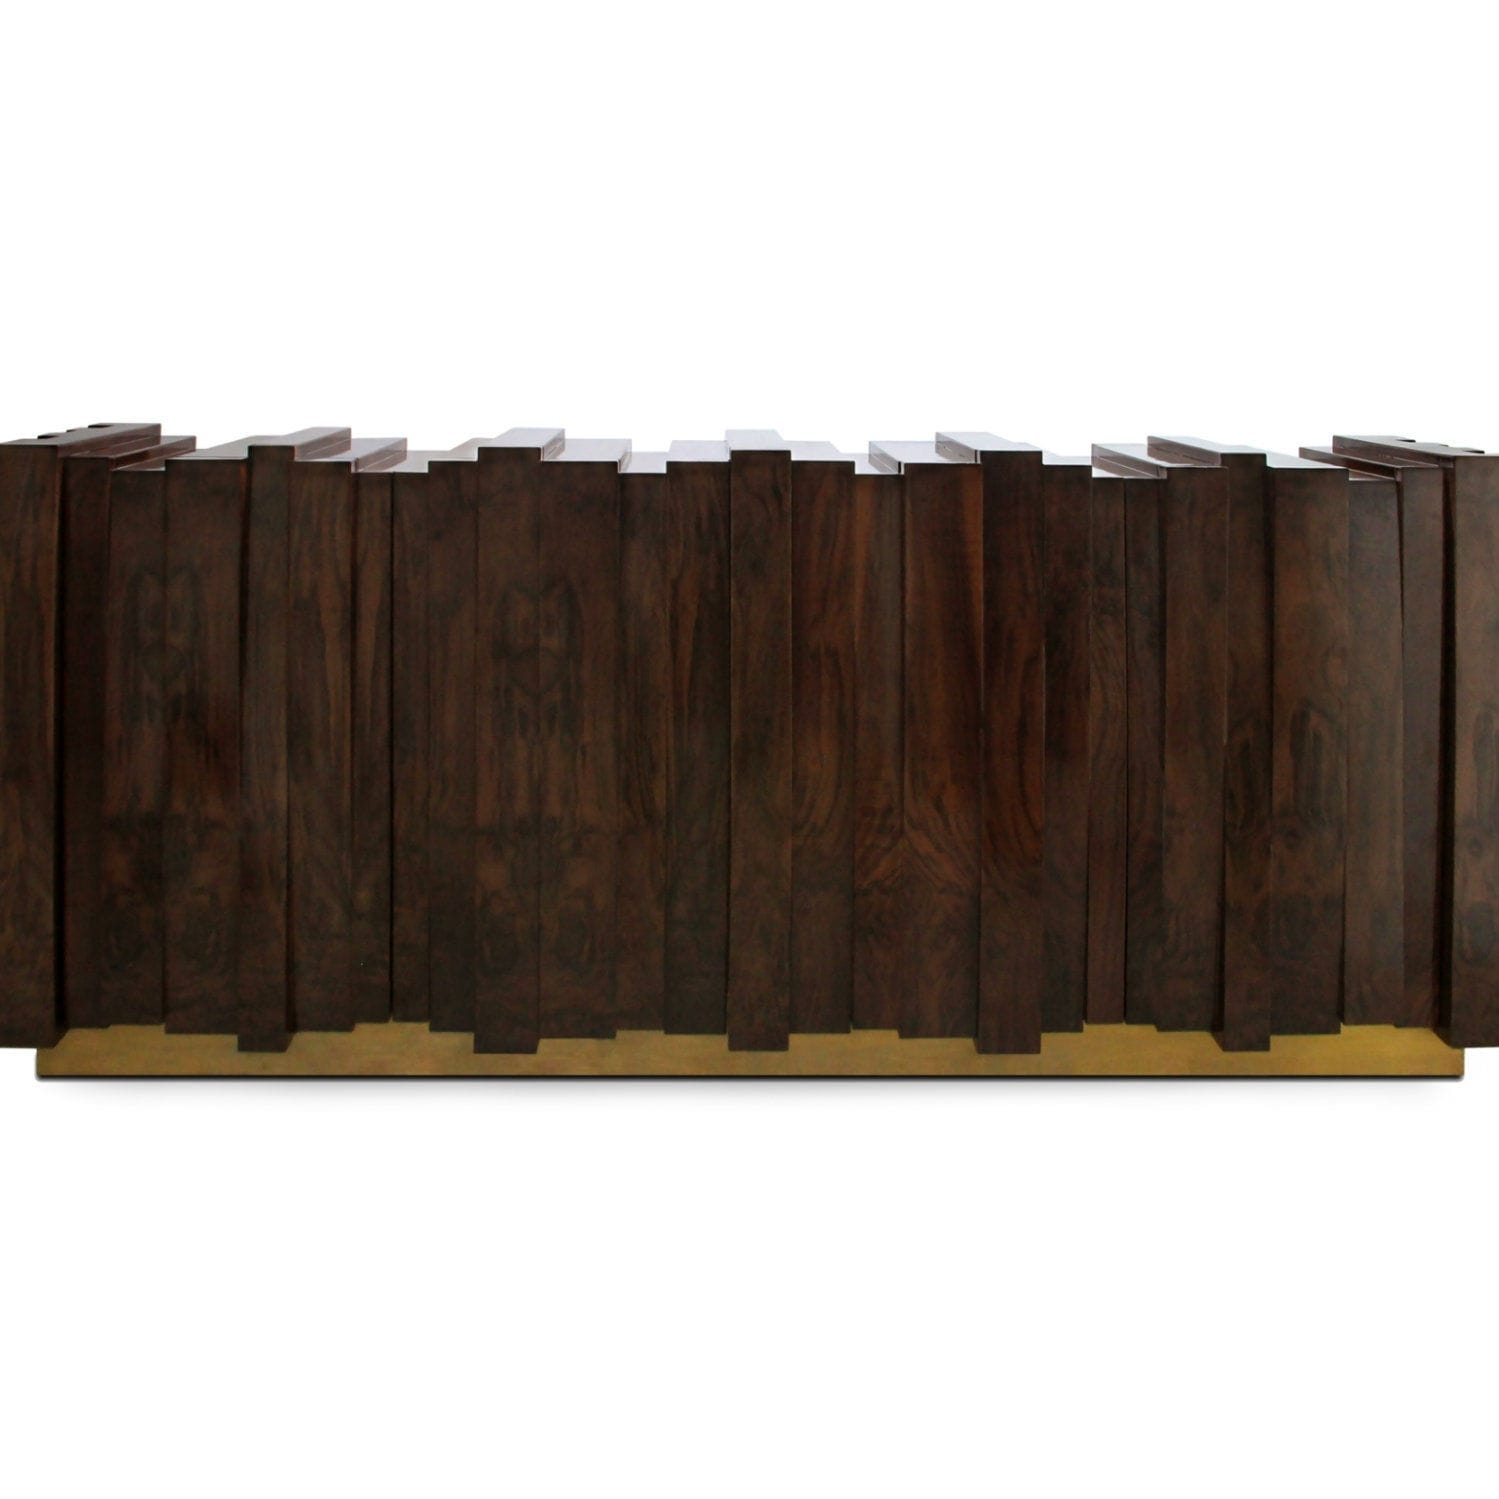 Contemporary Sideboard / Walnut / Wood Veneer / Ash - Nazca - Brabbu intended for Walnut Finish Contempo Sideboards (Image 12 of 30)